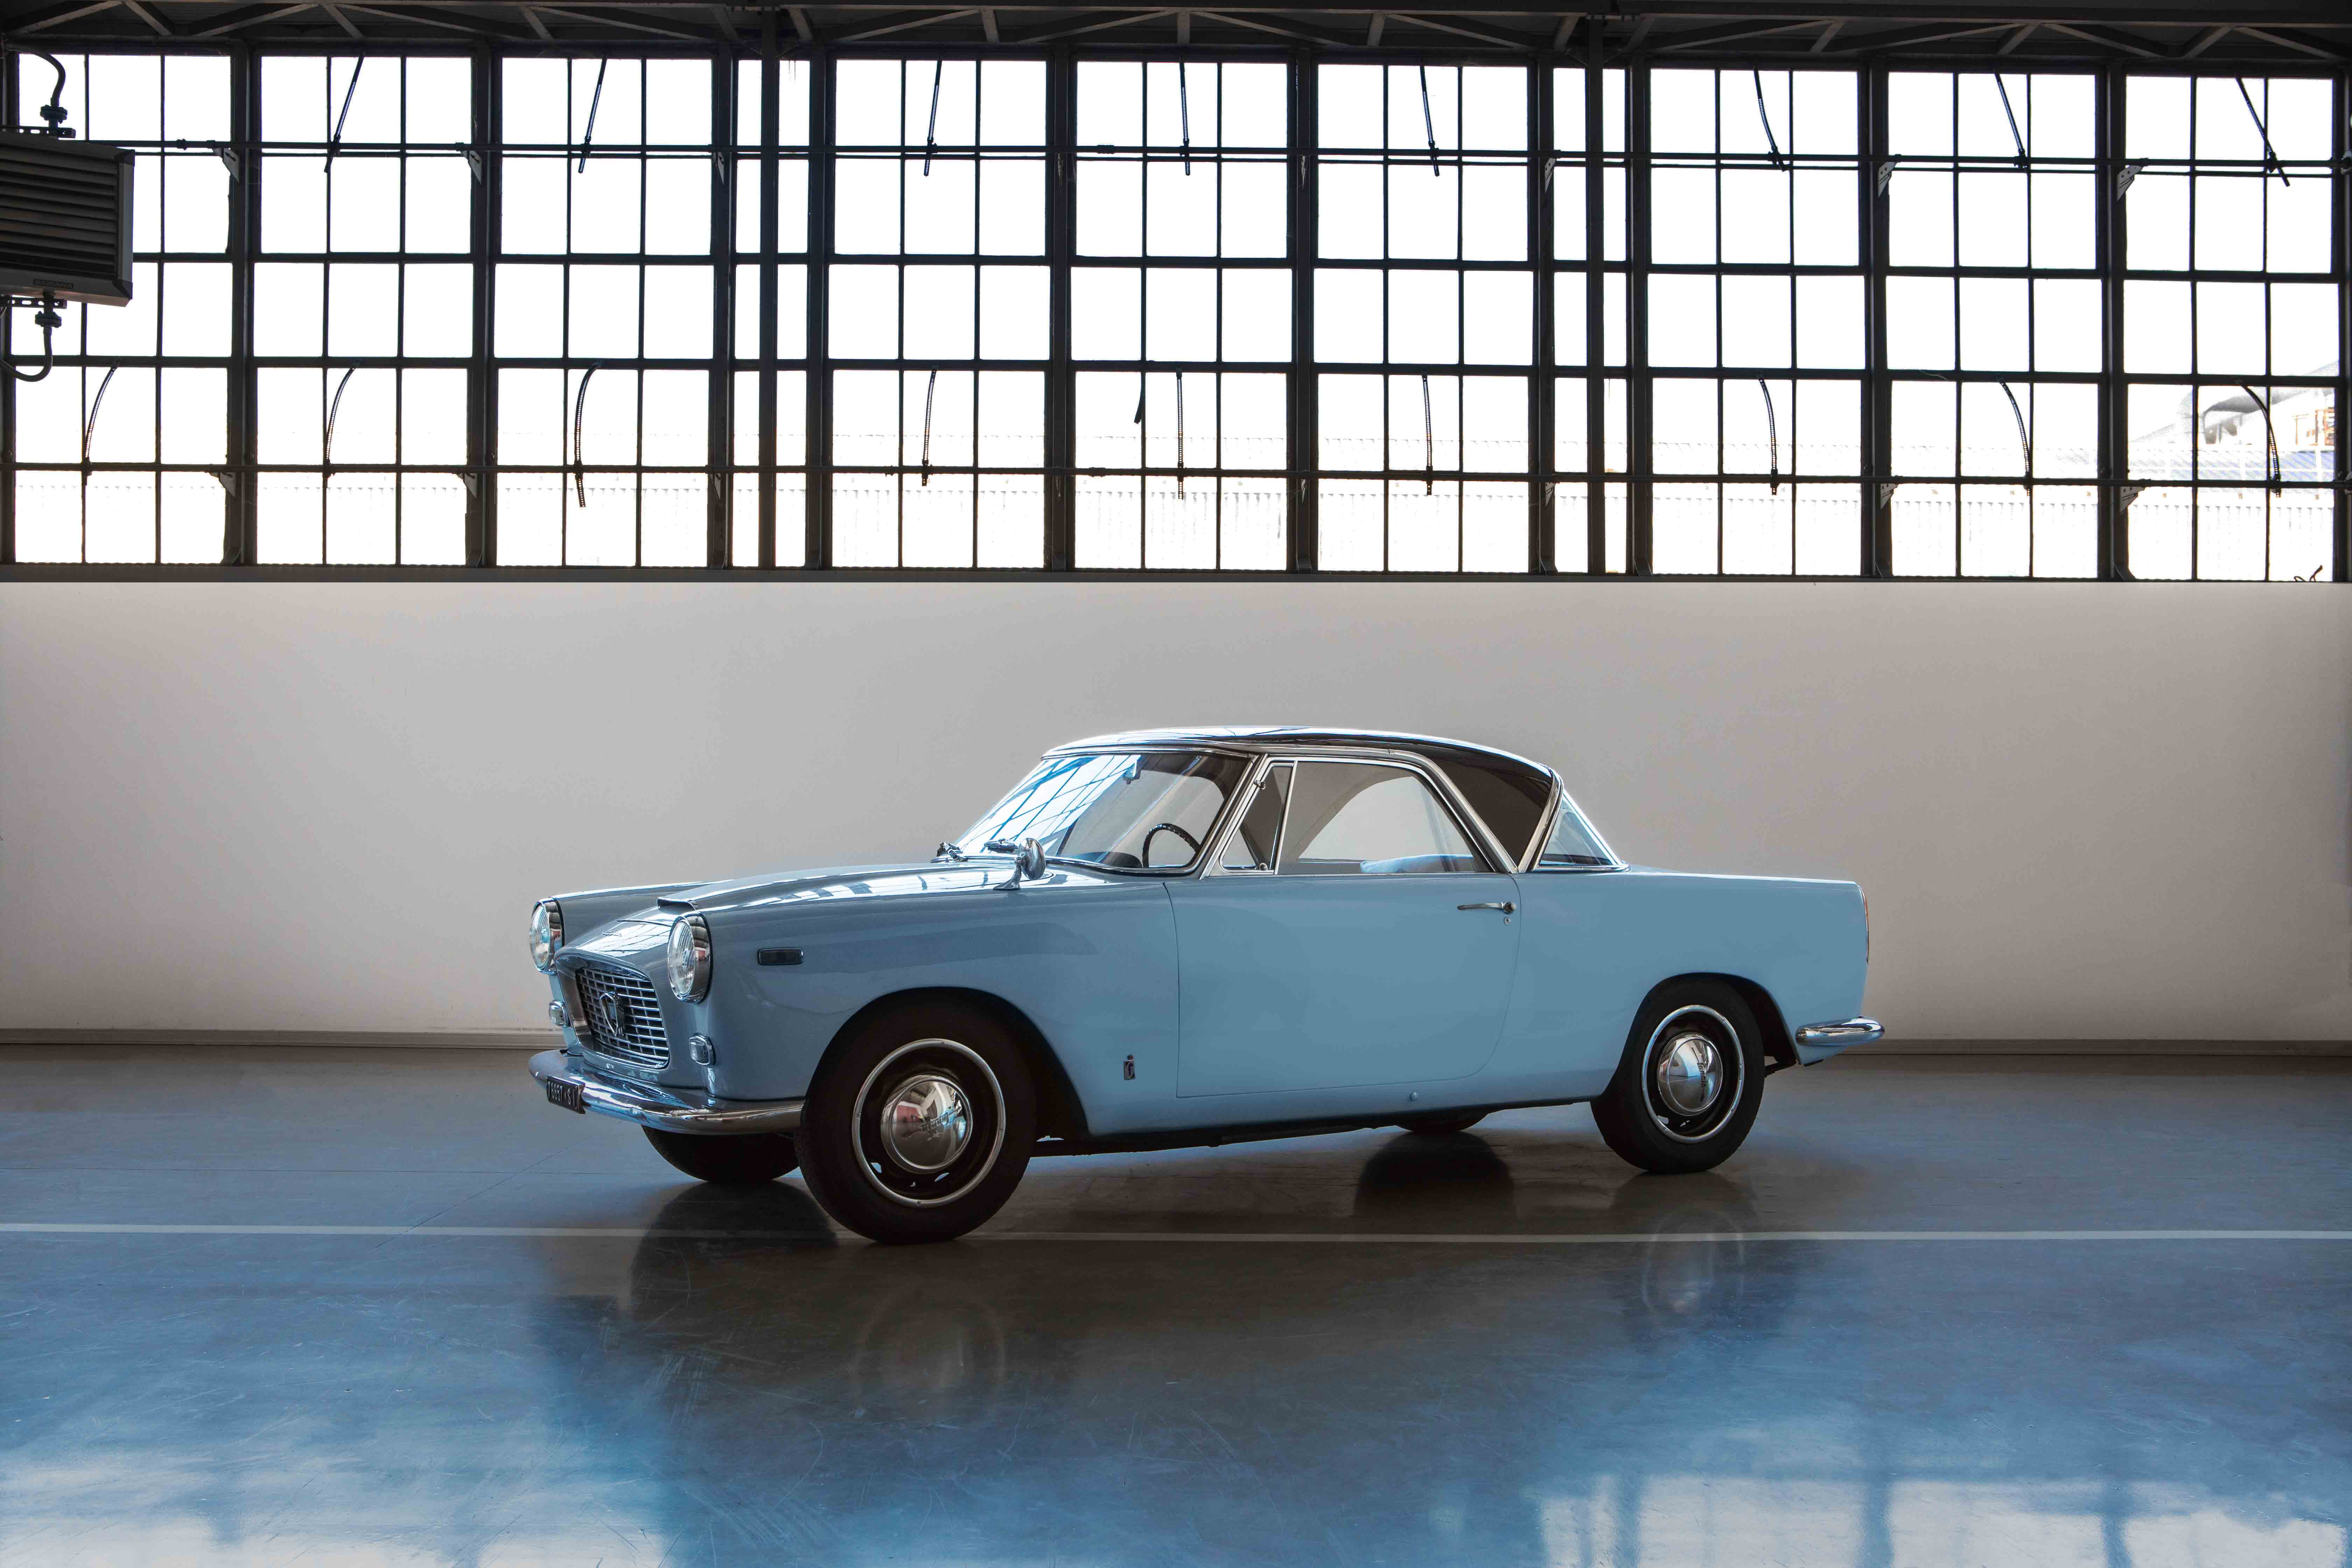 1959 Lancia Appia coupe Reloaded by Creators